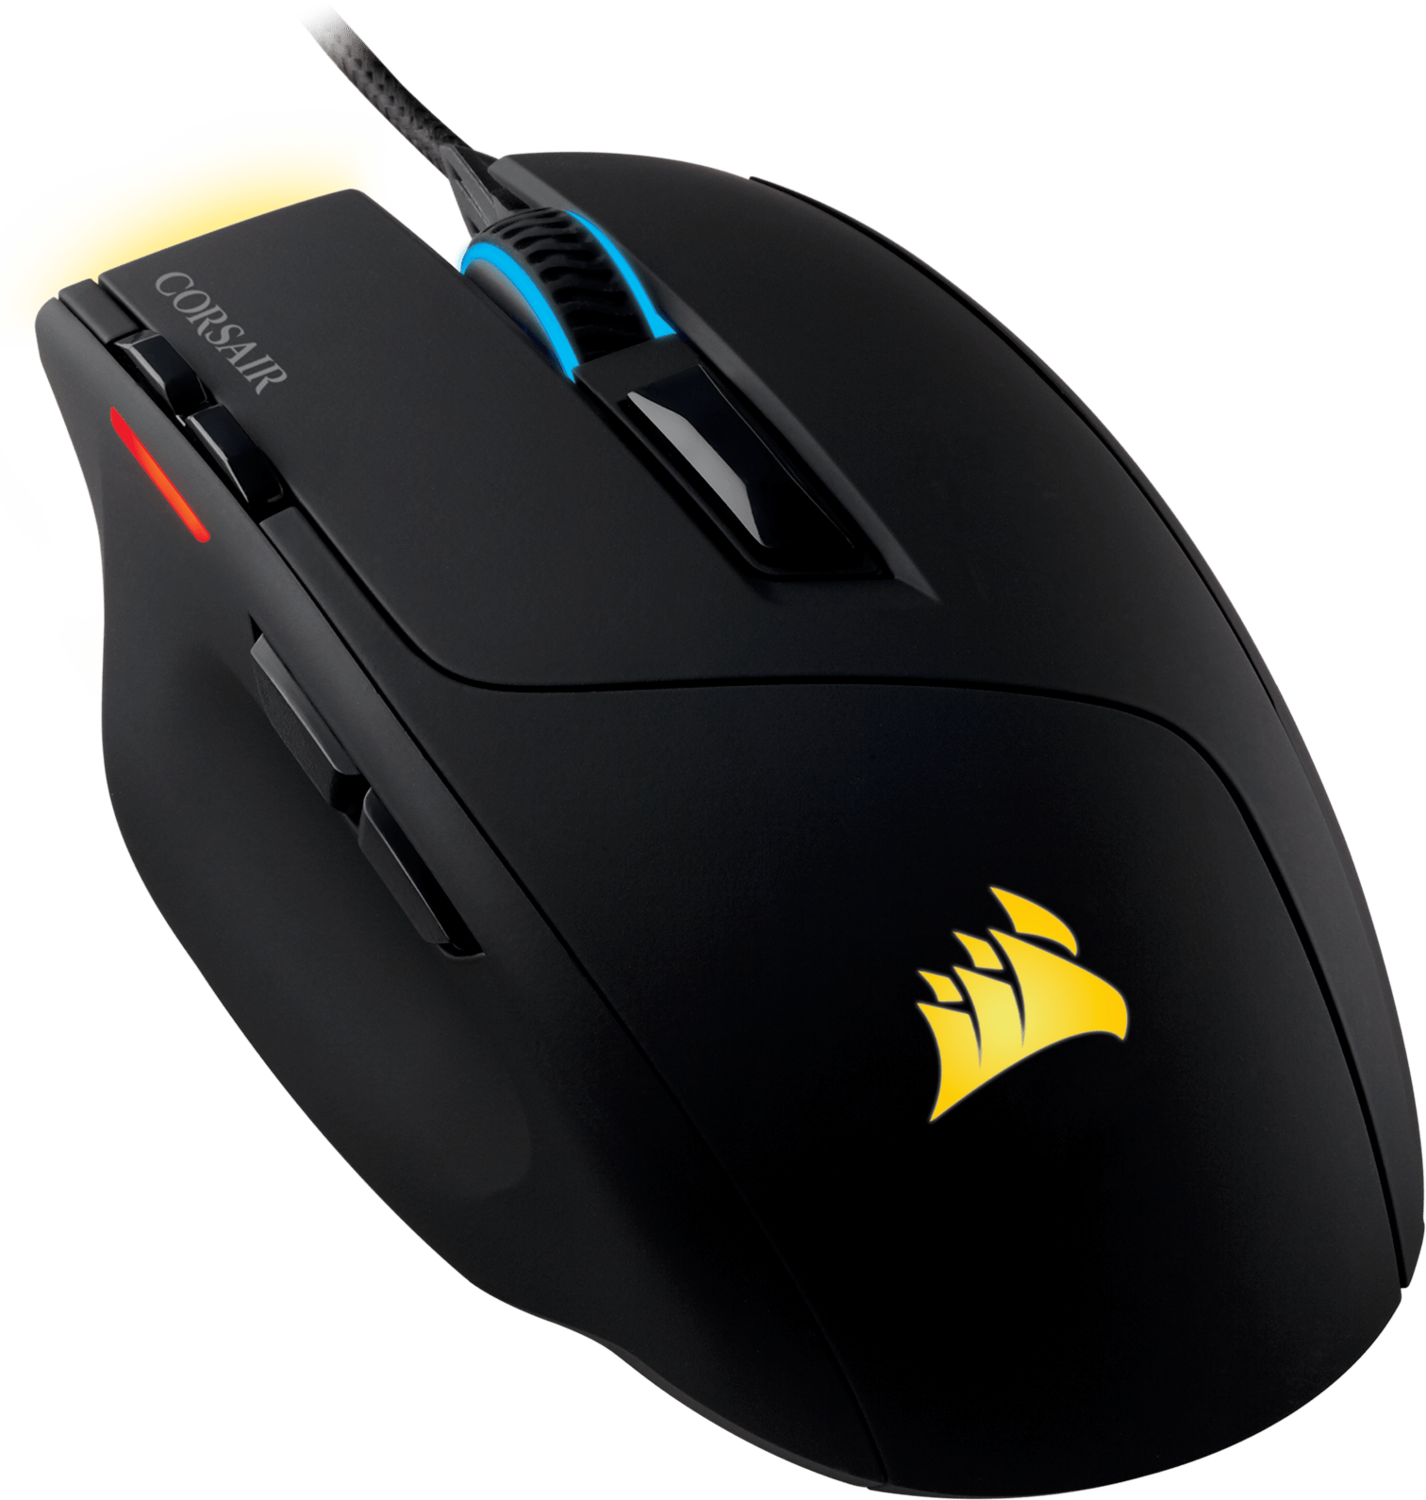 Corsair SABRE RGB Laser Gaming Mouse